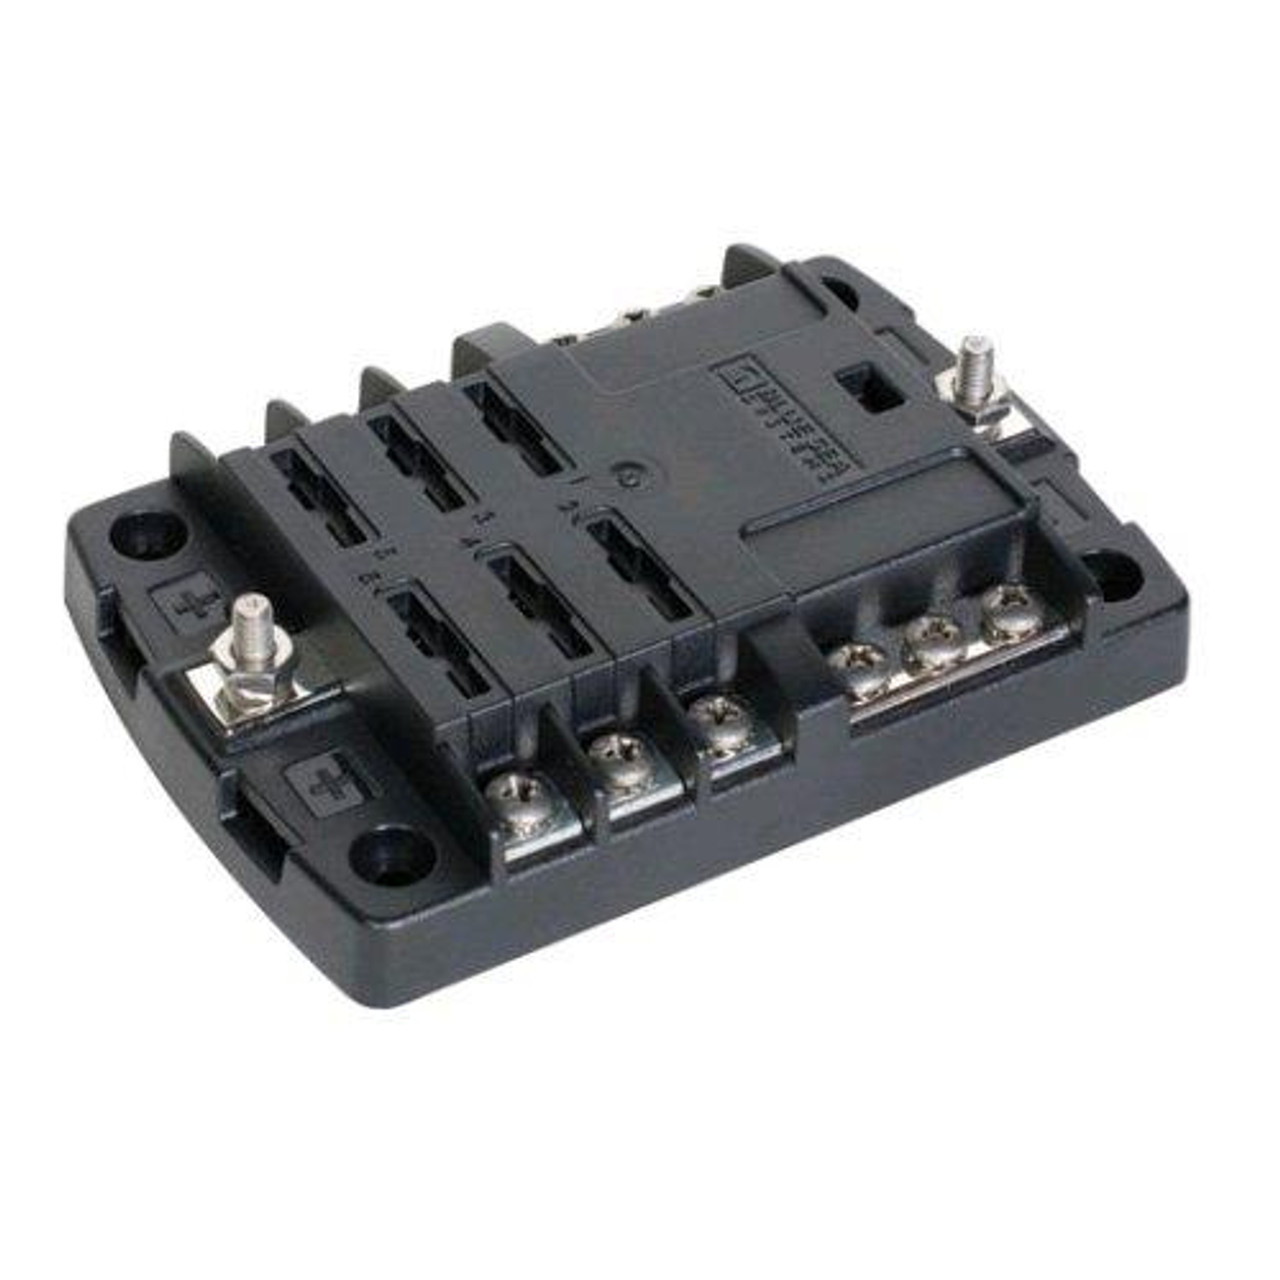 Gamber-Johnson Power Distribution Block with Negative Bus